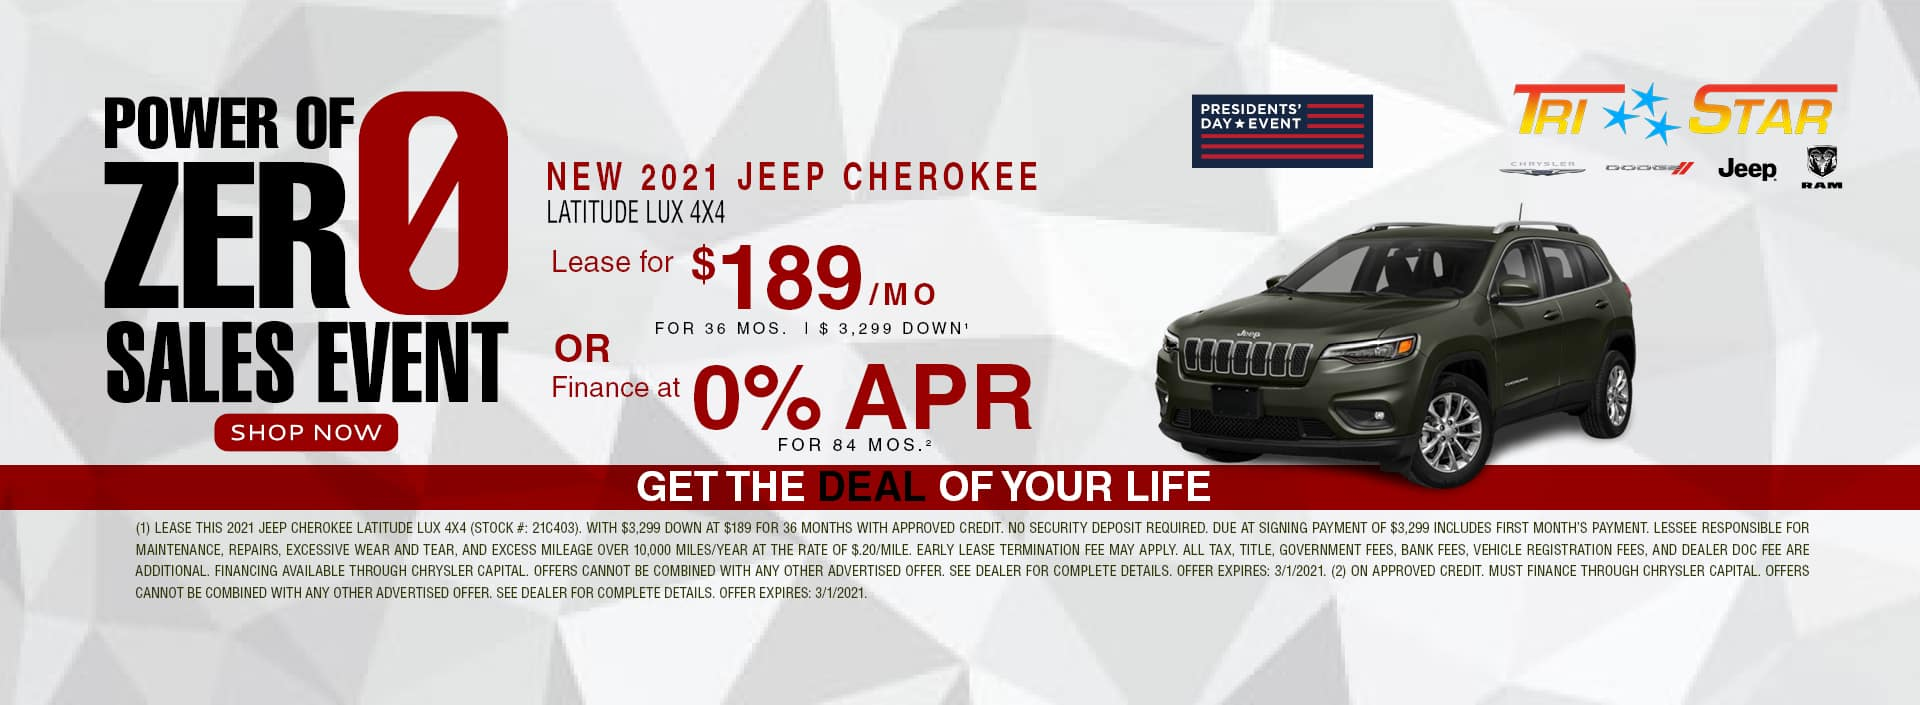 Power of 0 sales event - 2021 Jeep Cherokee Lease for $189/mo